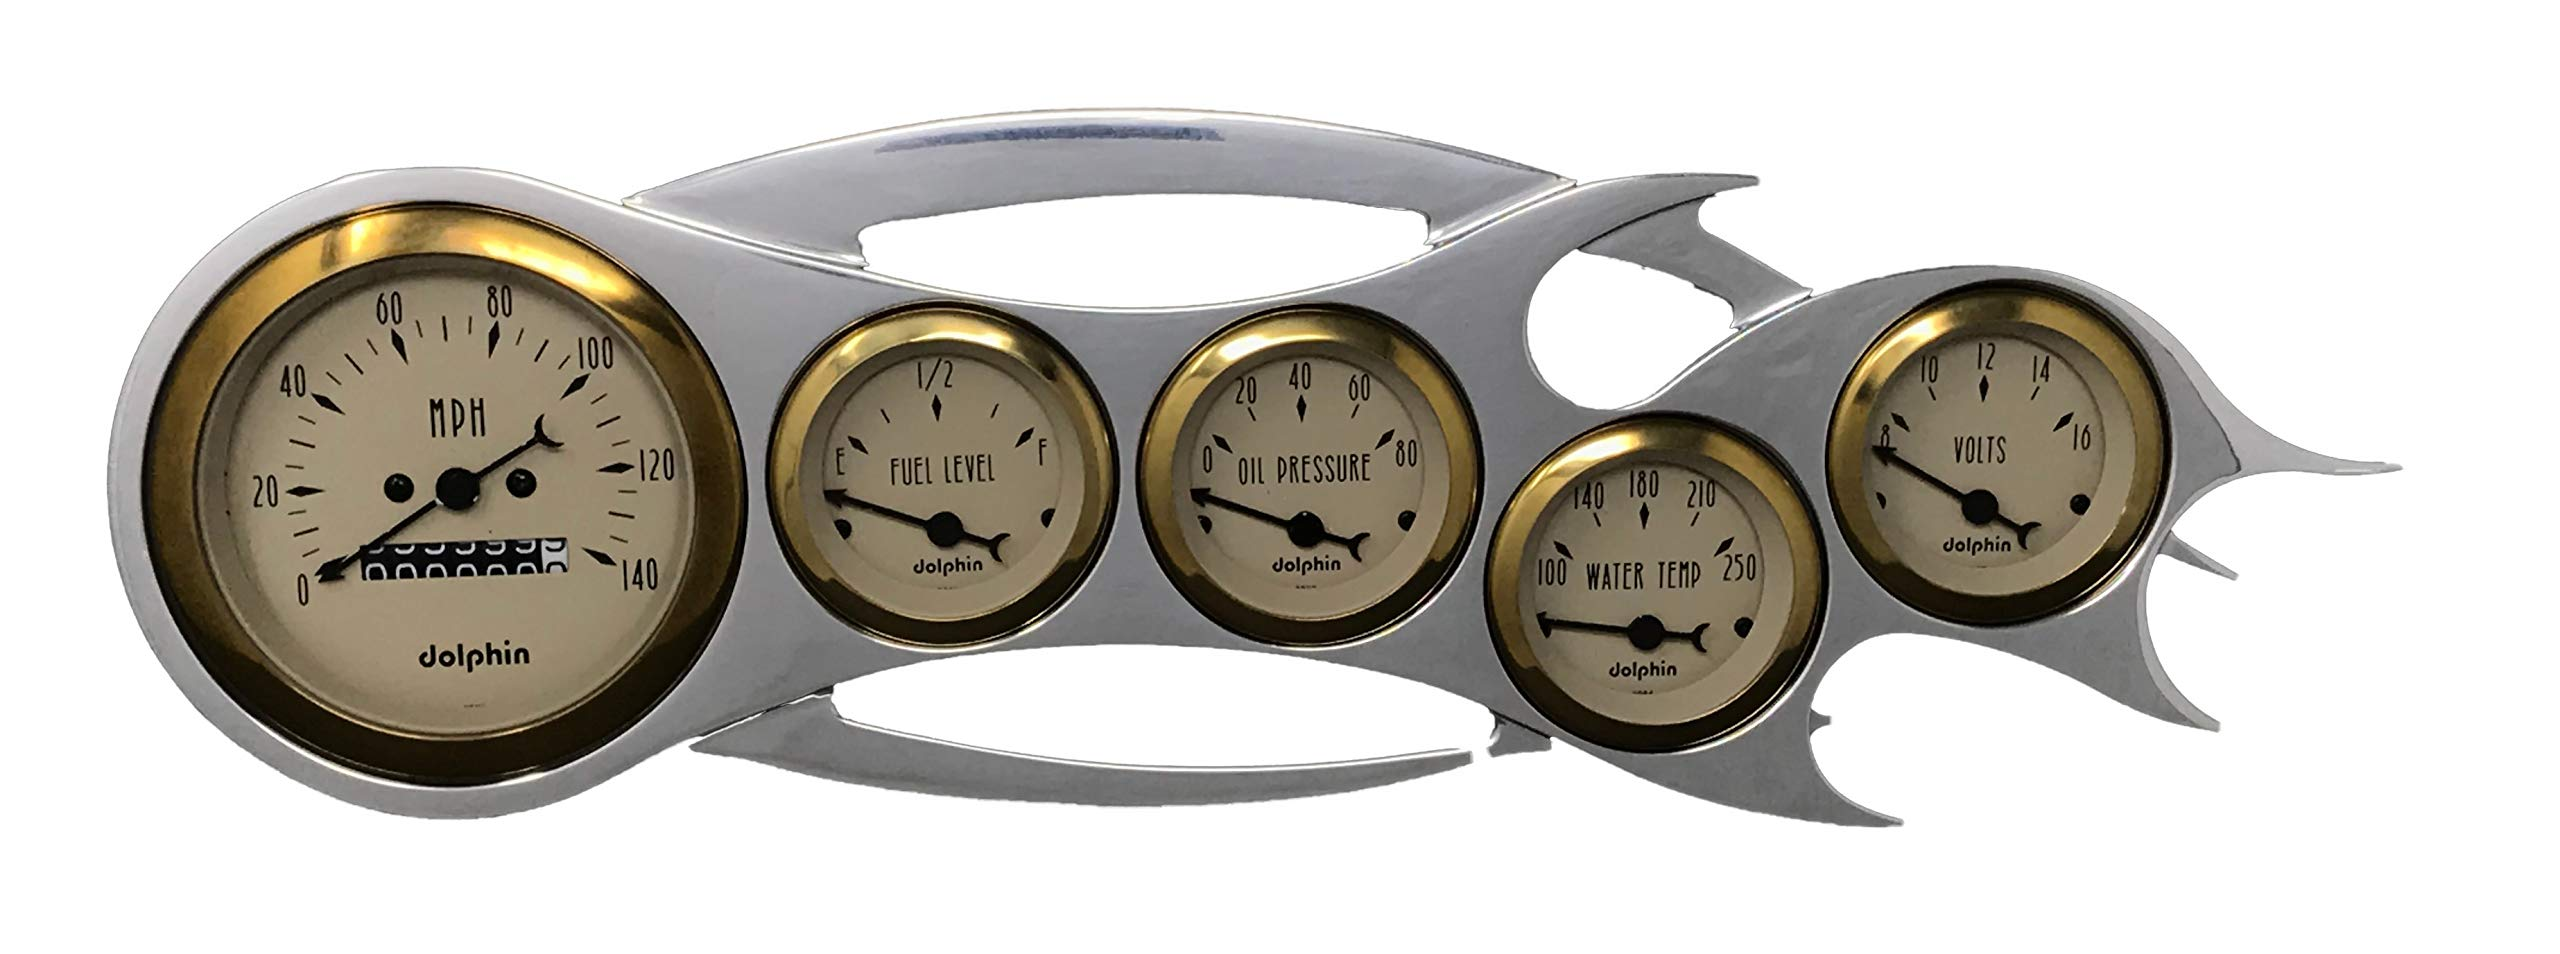 Universal Flame - 5 Gauge Dash Cluster Panel - Mechanical -Gold Bezel by Dolphin Gauges